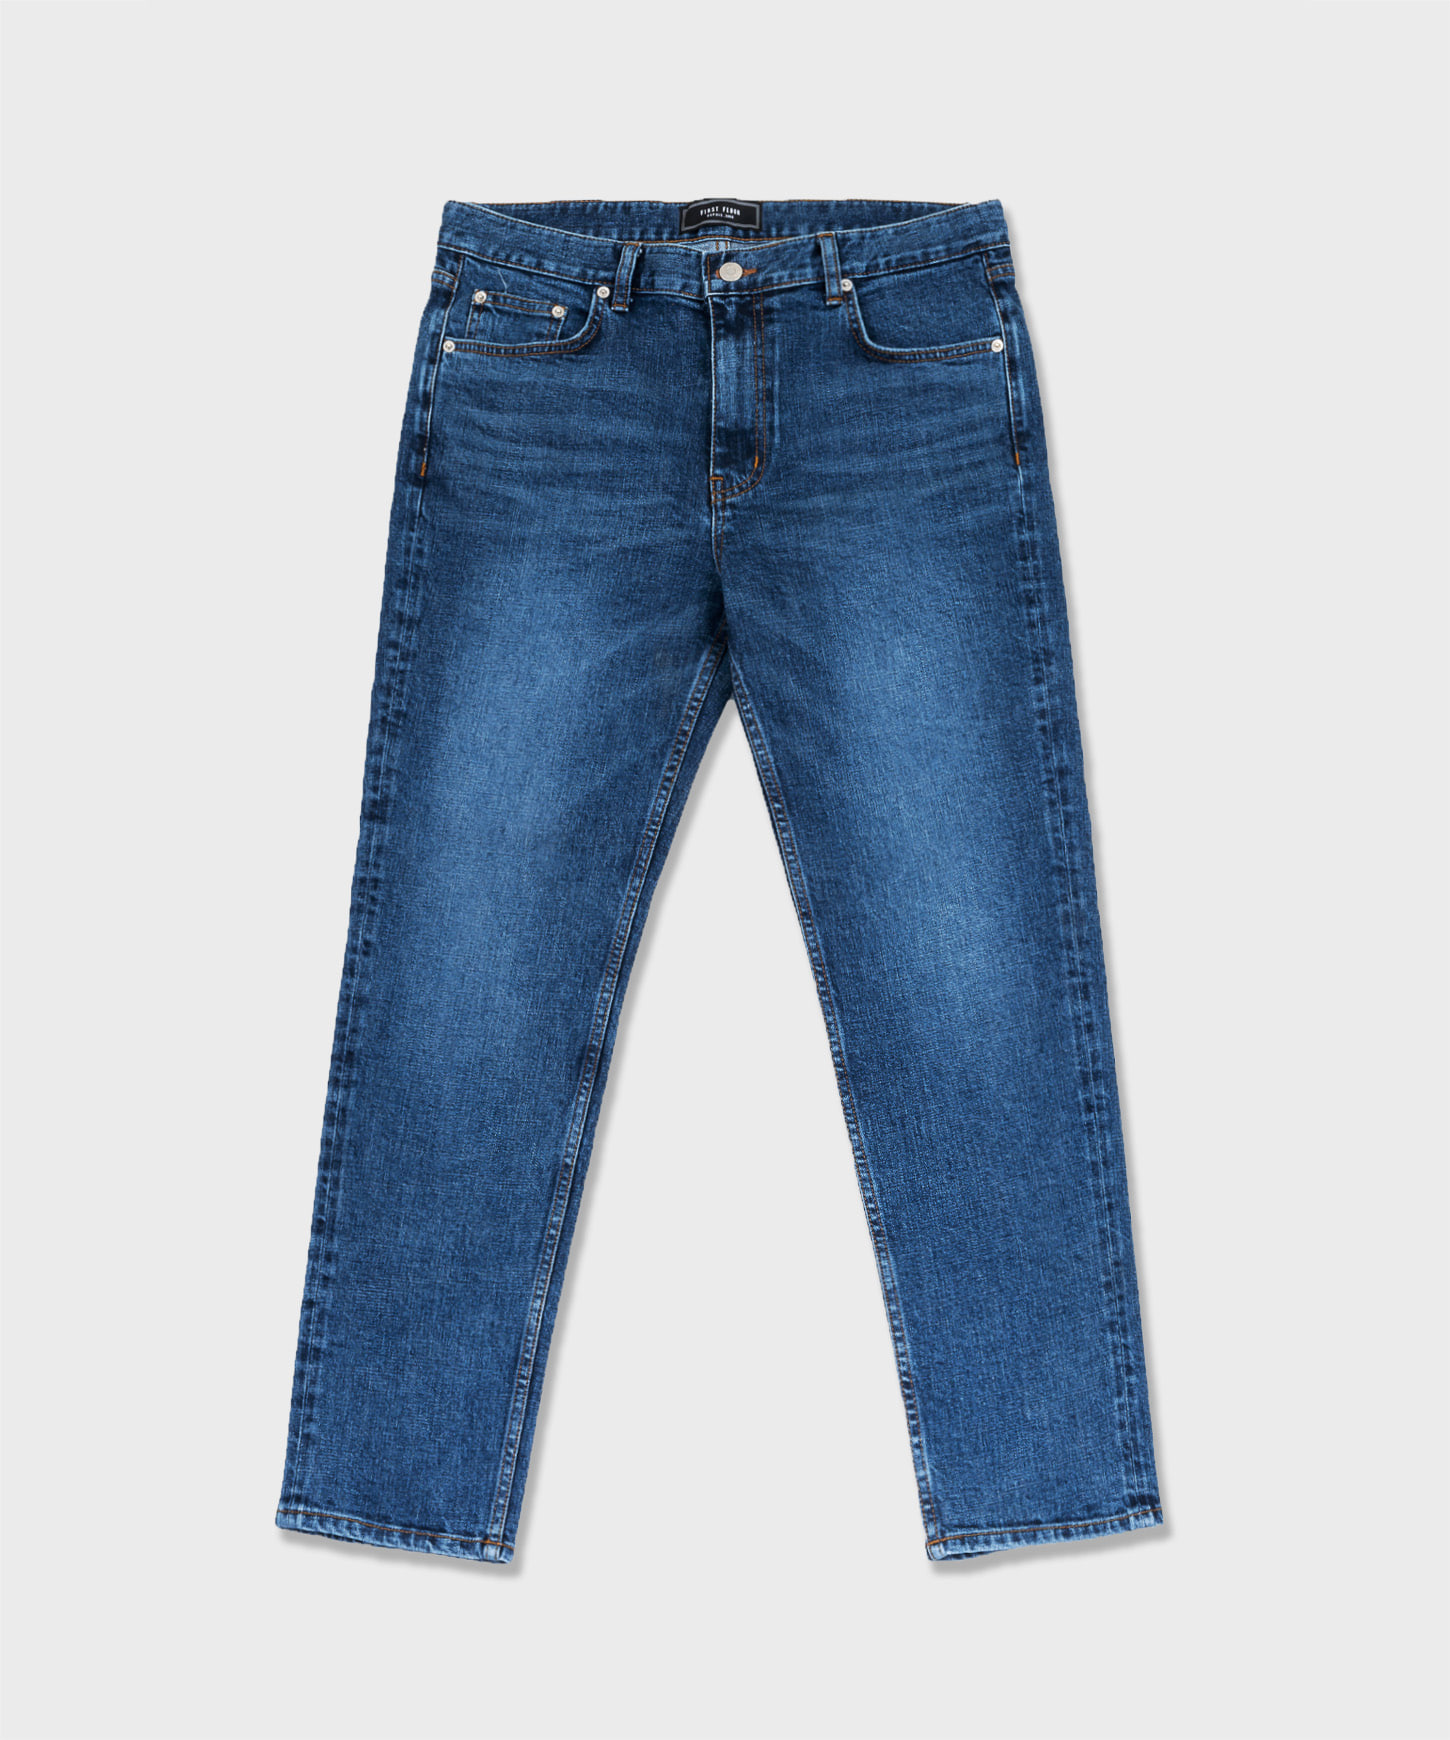 URBAN STANDARD(slim tapered, cropped, 딥 인디고)